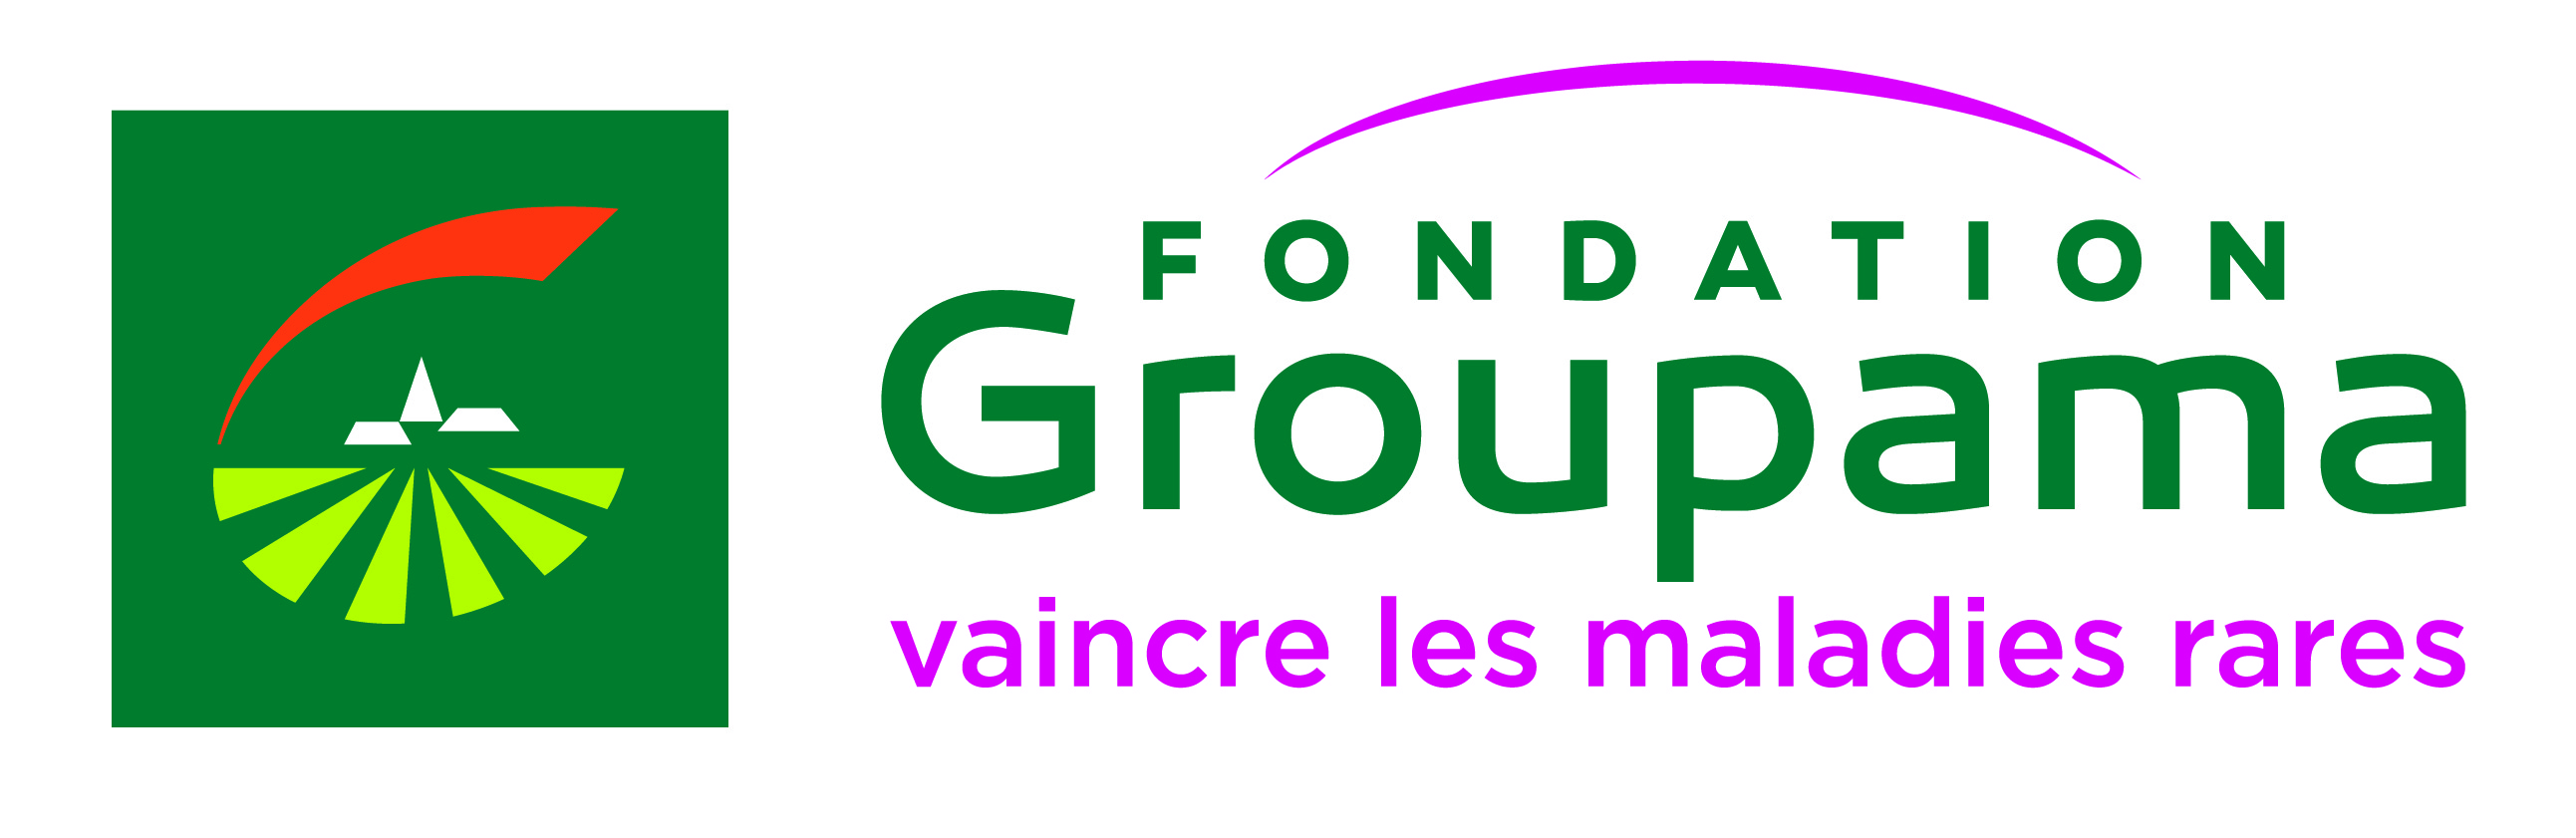 FB_fondation_groupama_Quad